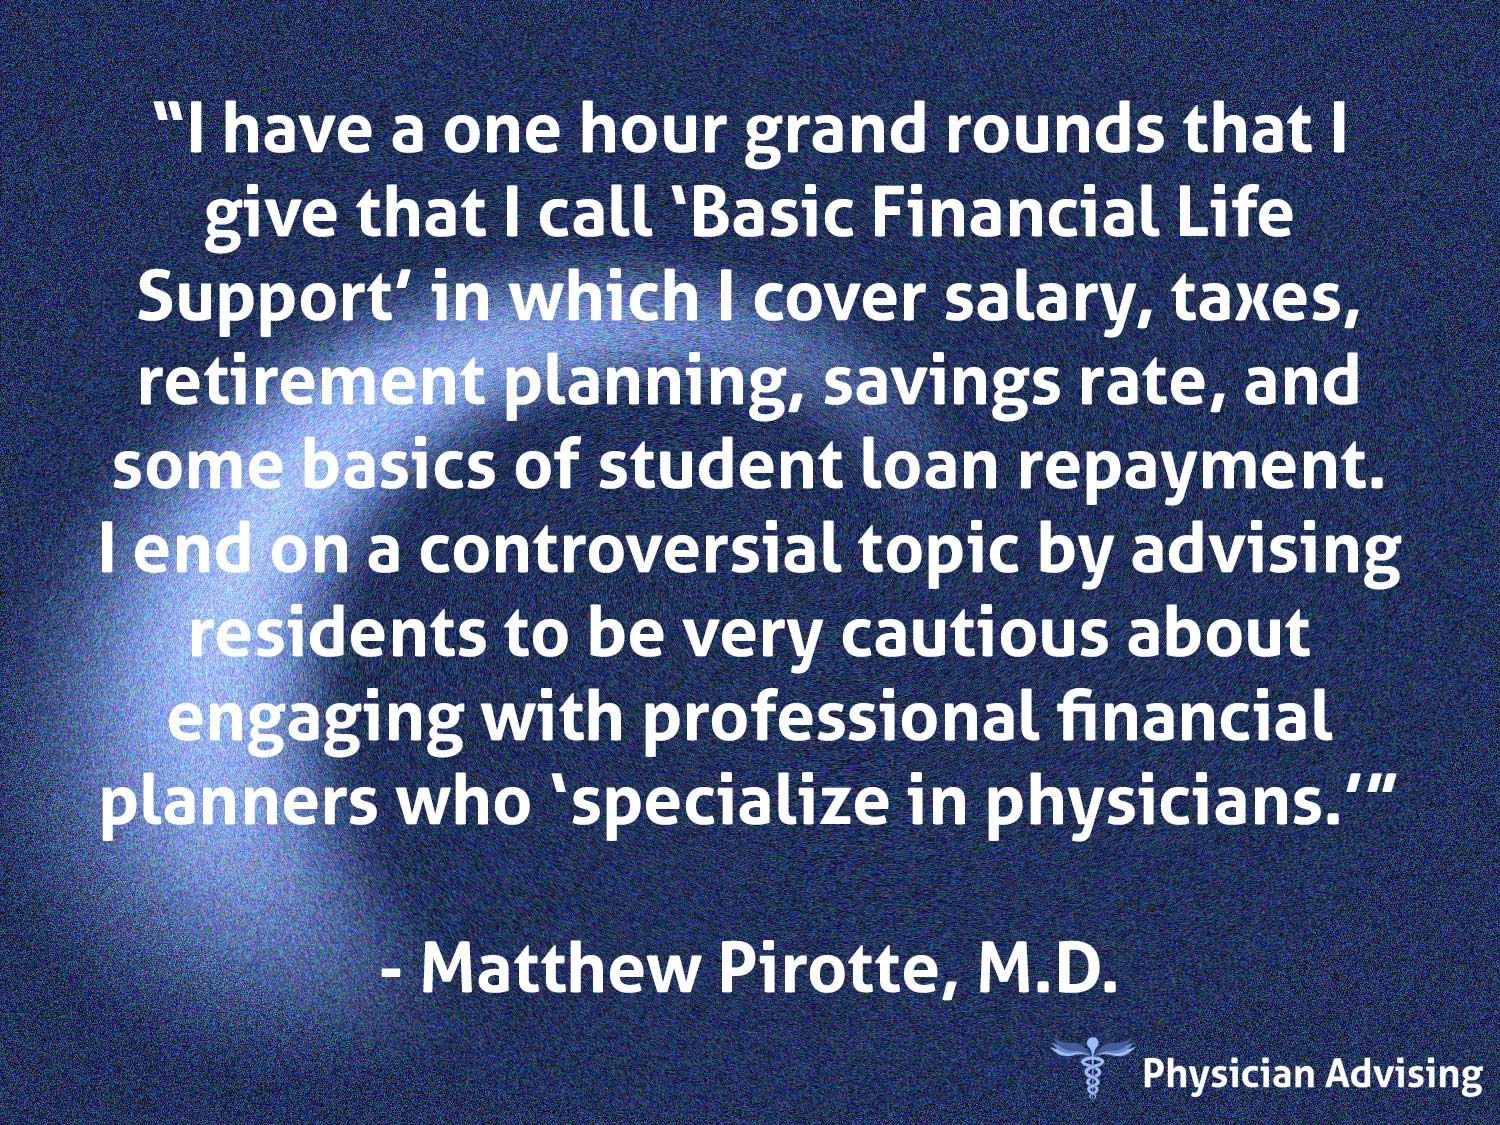 Physician Advising Quote #49